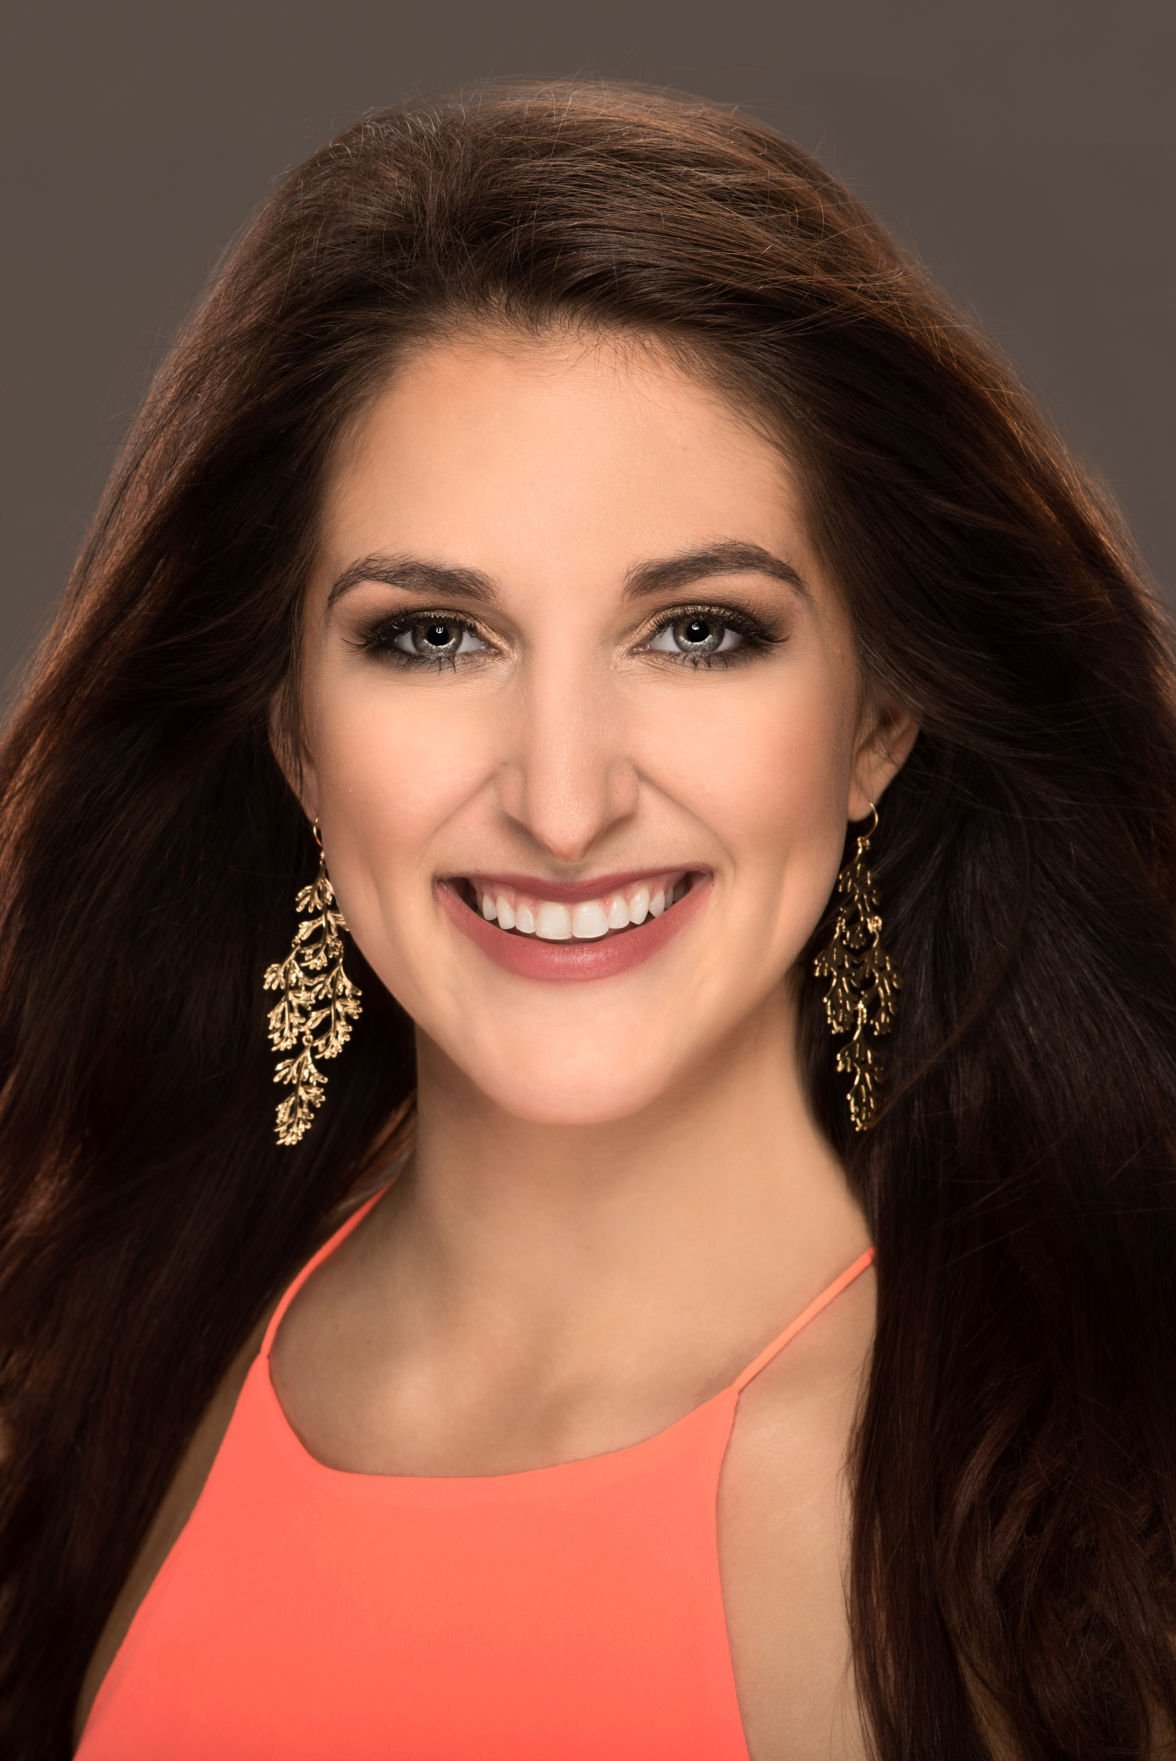 Miss Vermont 2017 Erin Connor